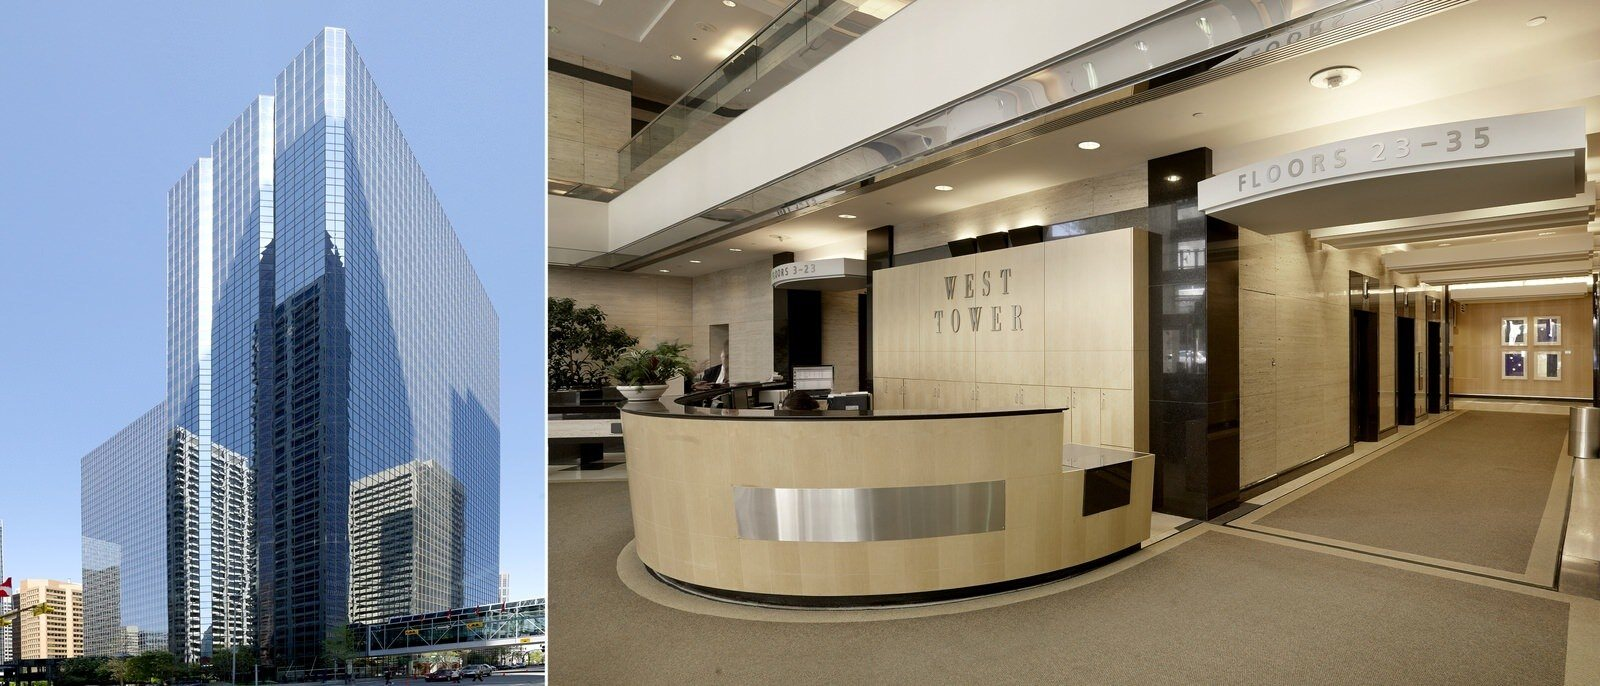 """Exterior view of a building and an interior view of a lobby with a sign that says """"West Tower."""""""